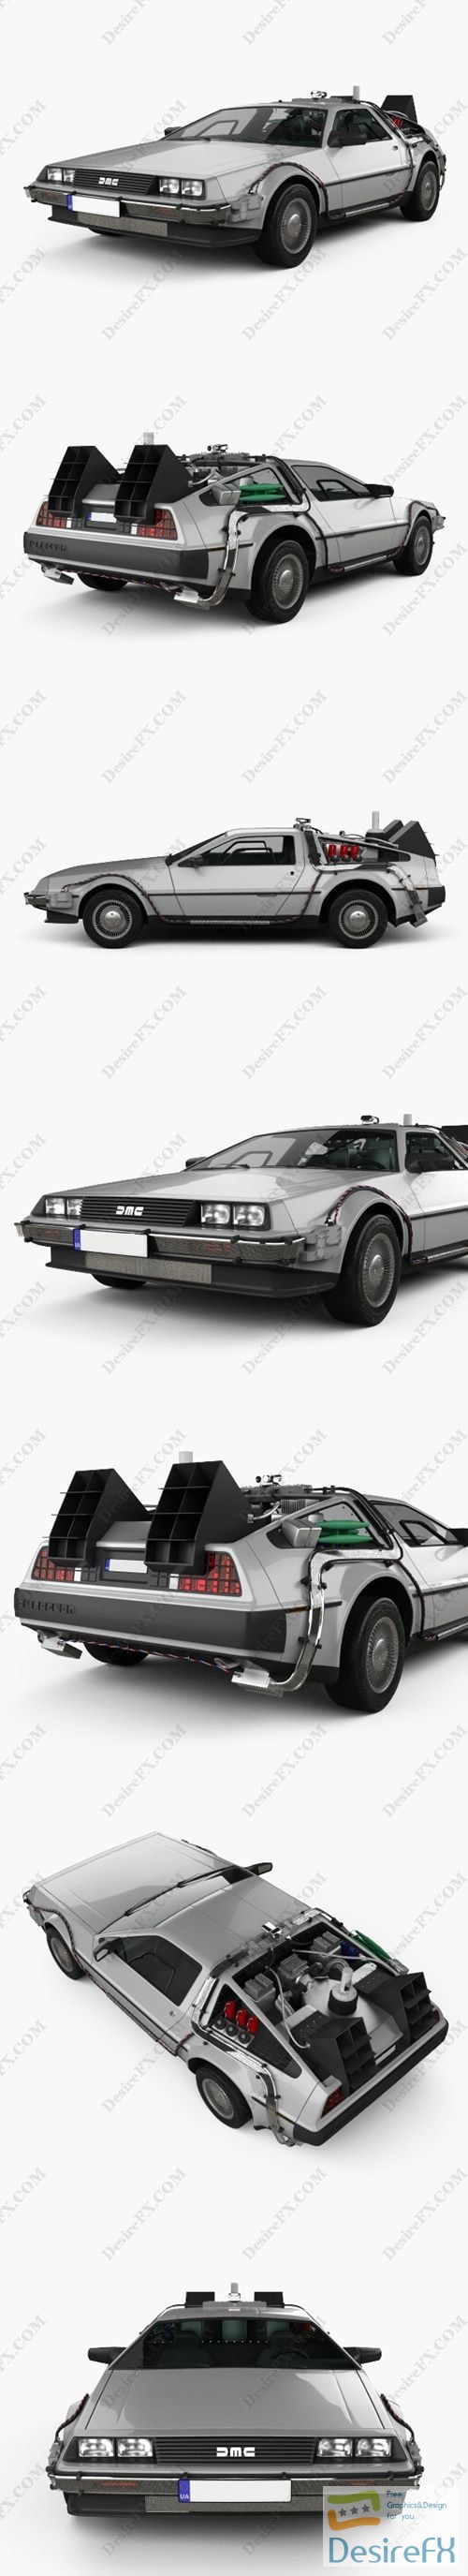 3d-models - DeLorean DMC-12 BTTF II 1981 3D Model